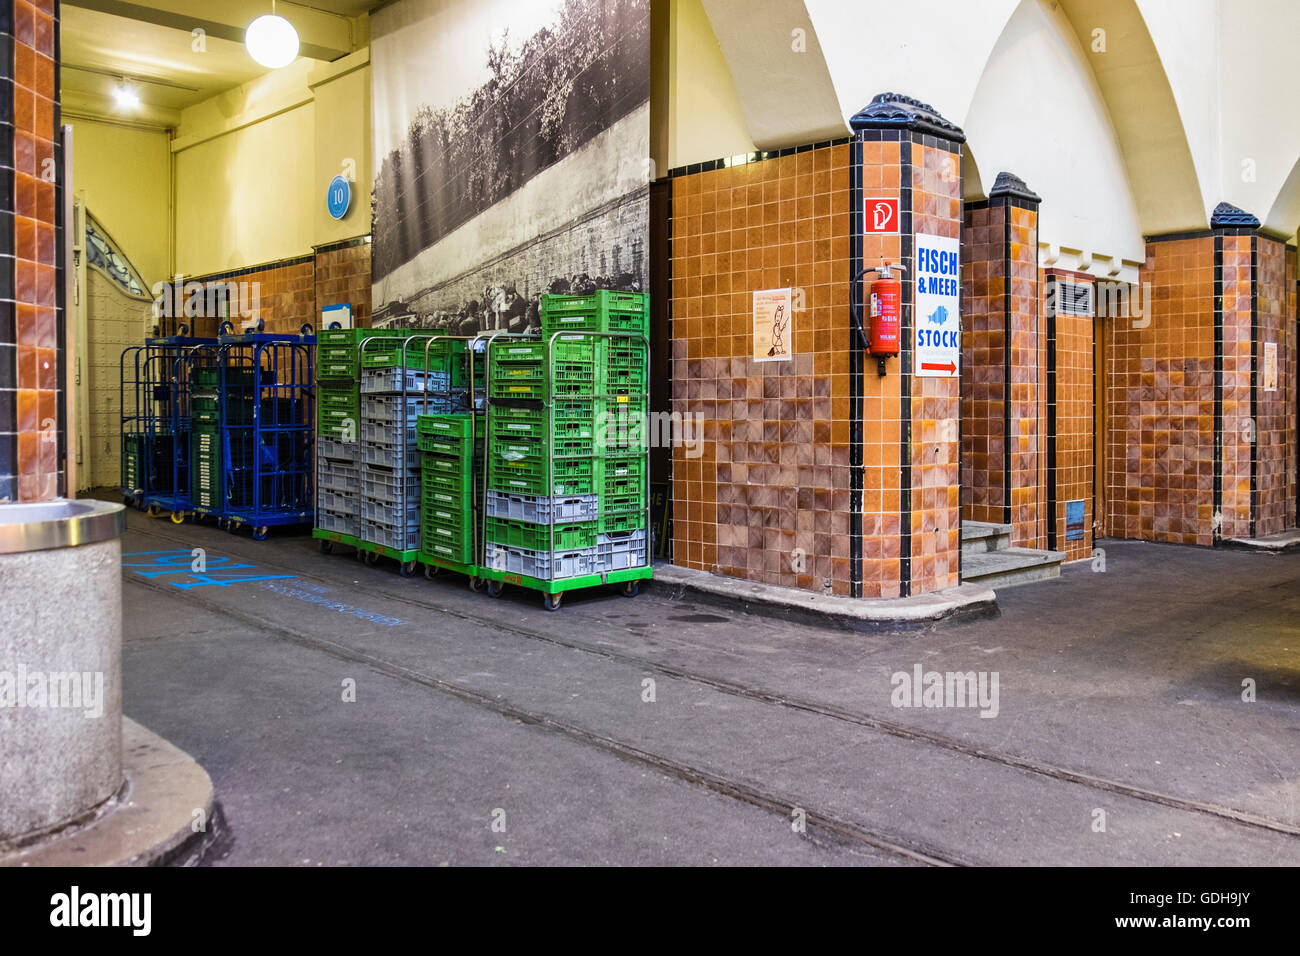 Germany, Stuttgart, Markthalle. Old market hall interior with decorative tiles and old monochrome photograph - Stock Image